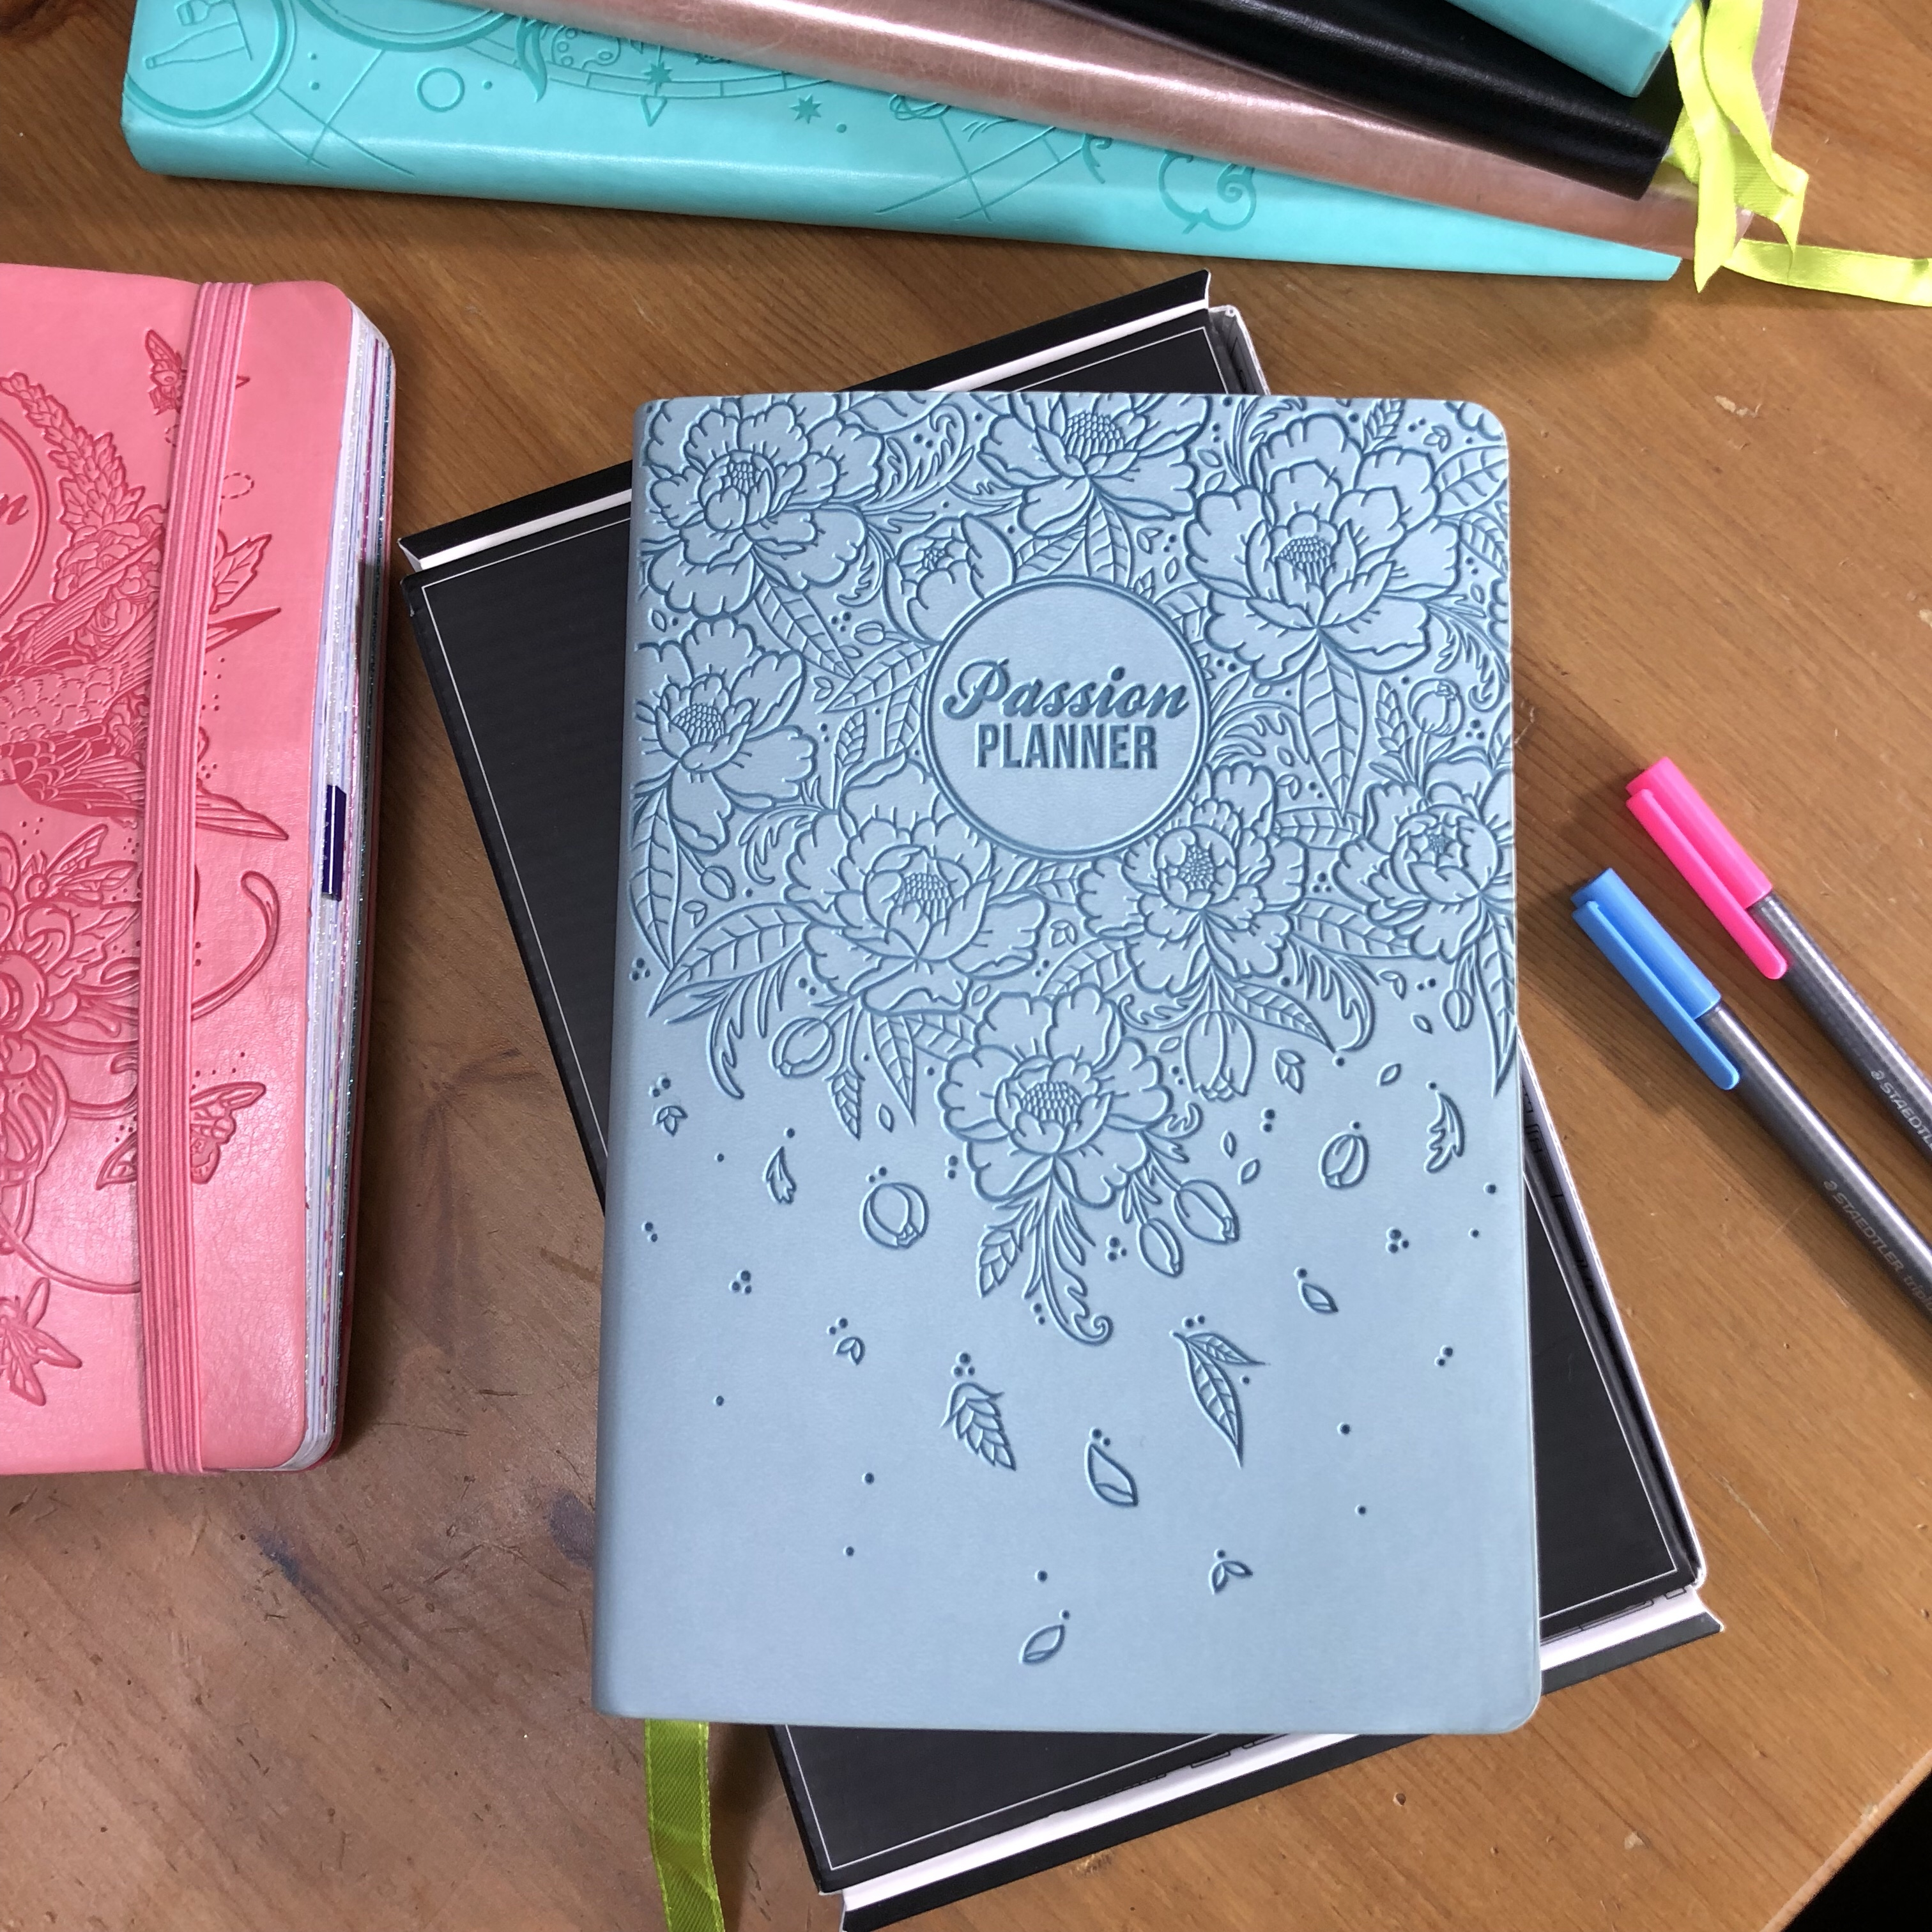 It's just an image of Passion Planner Printable within spiral bound